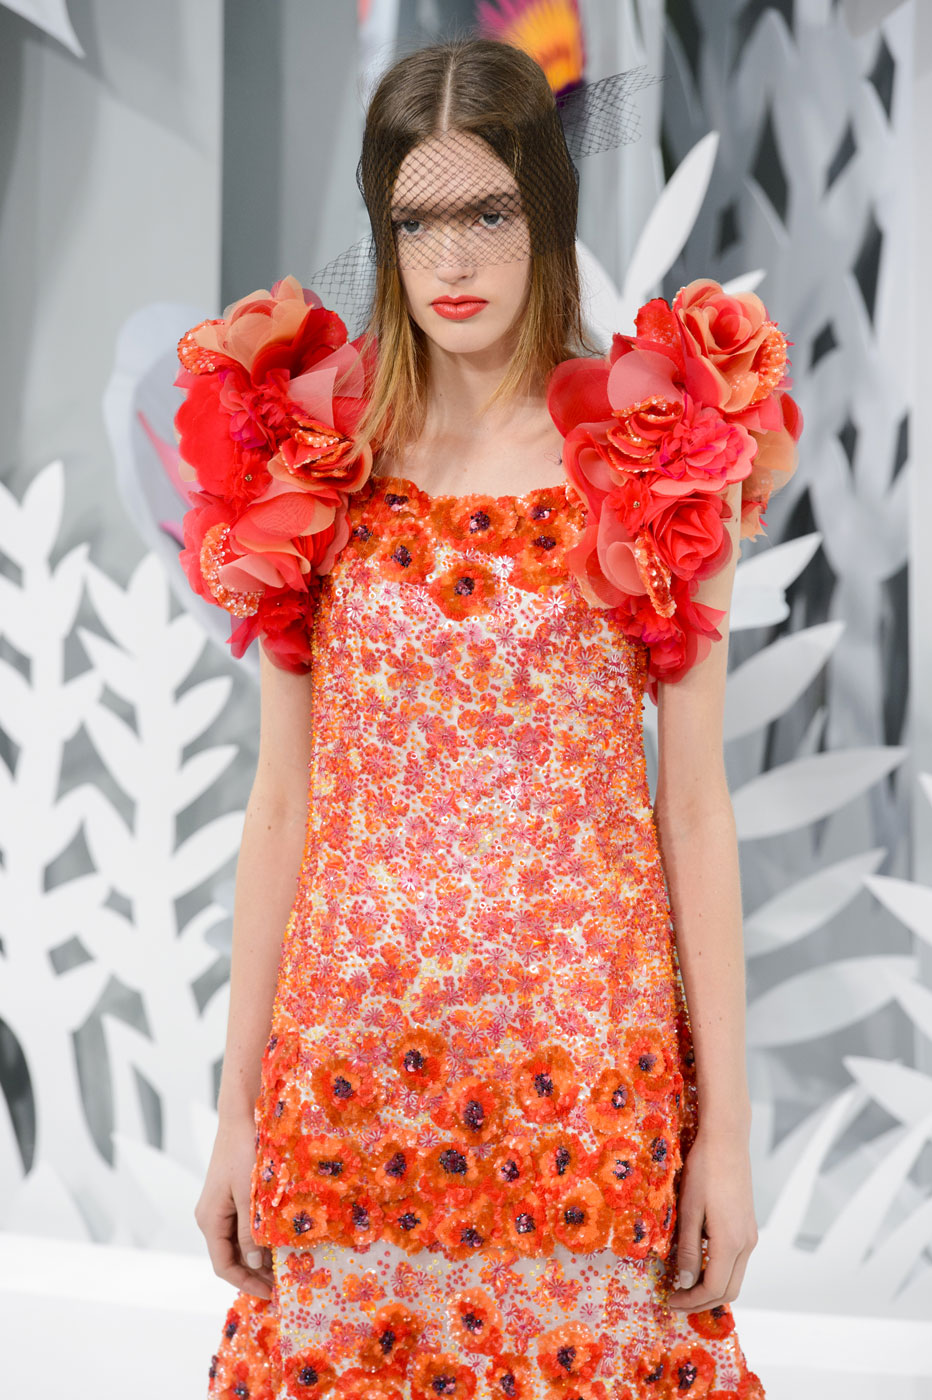 Chanel-fashion-runway-show-haute-couture-paris-spring-summer-2015-the-impression-091